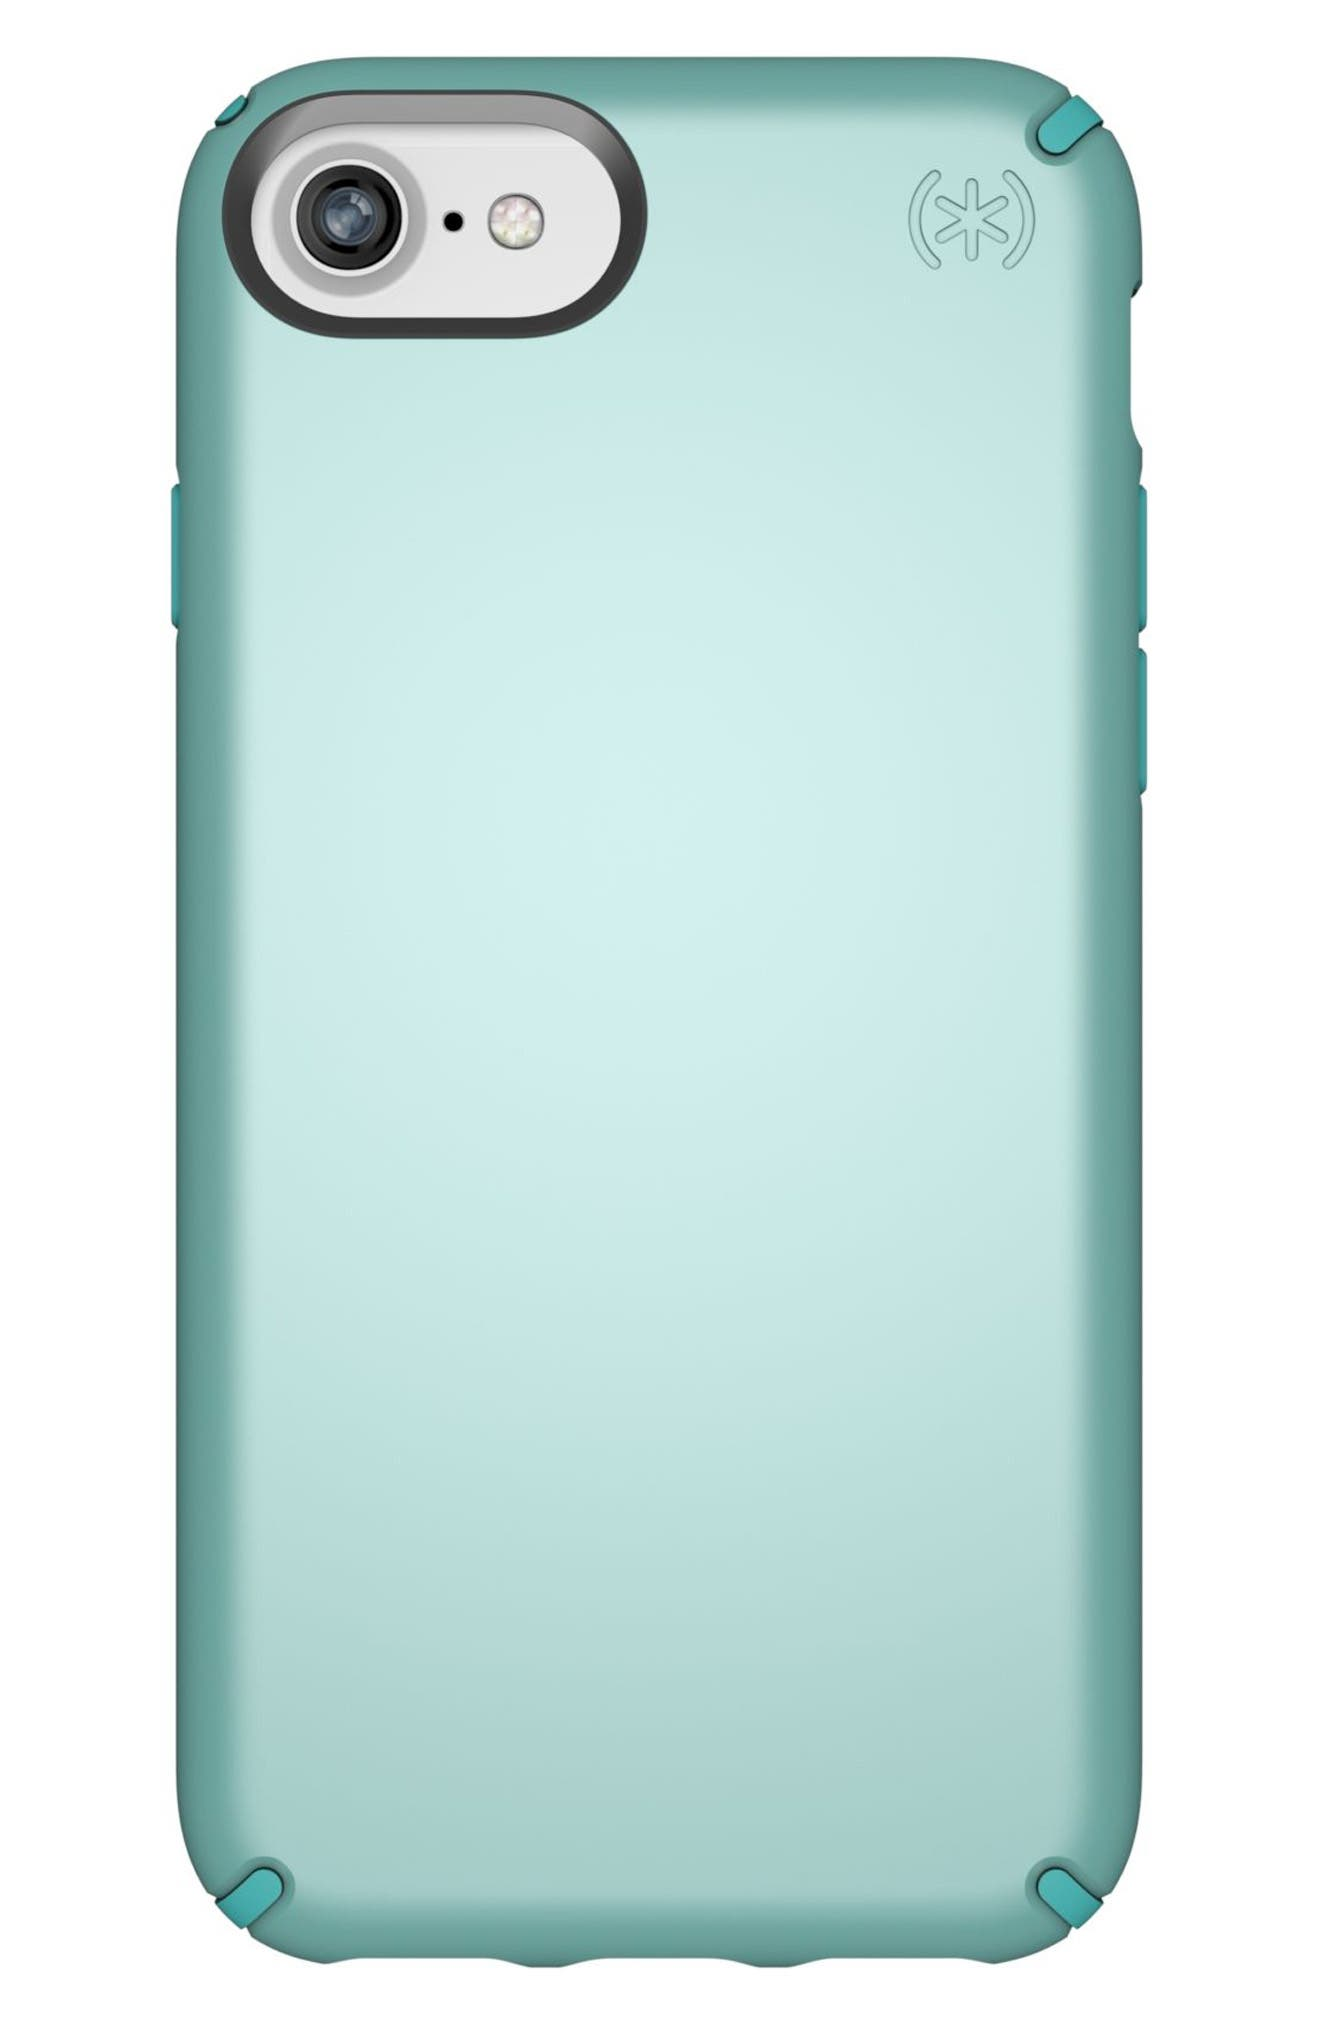 iPhone 6/6s/7/8 Case,                         Main,                         color, Peppermint Green/ Teal